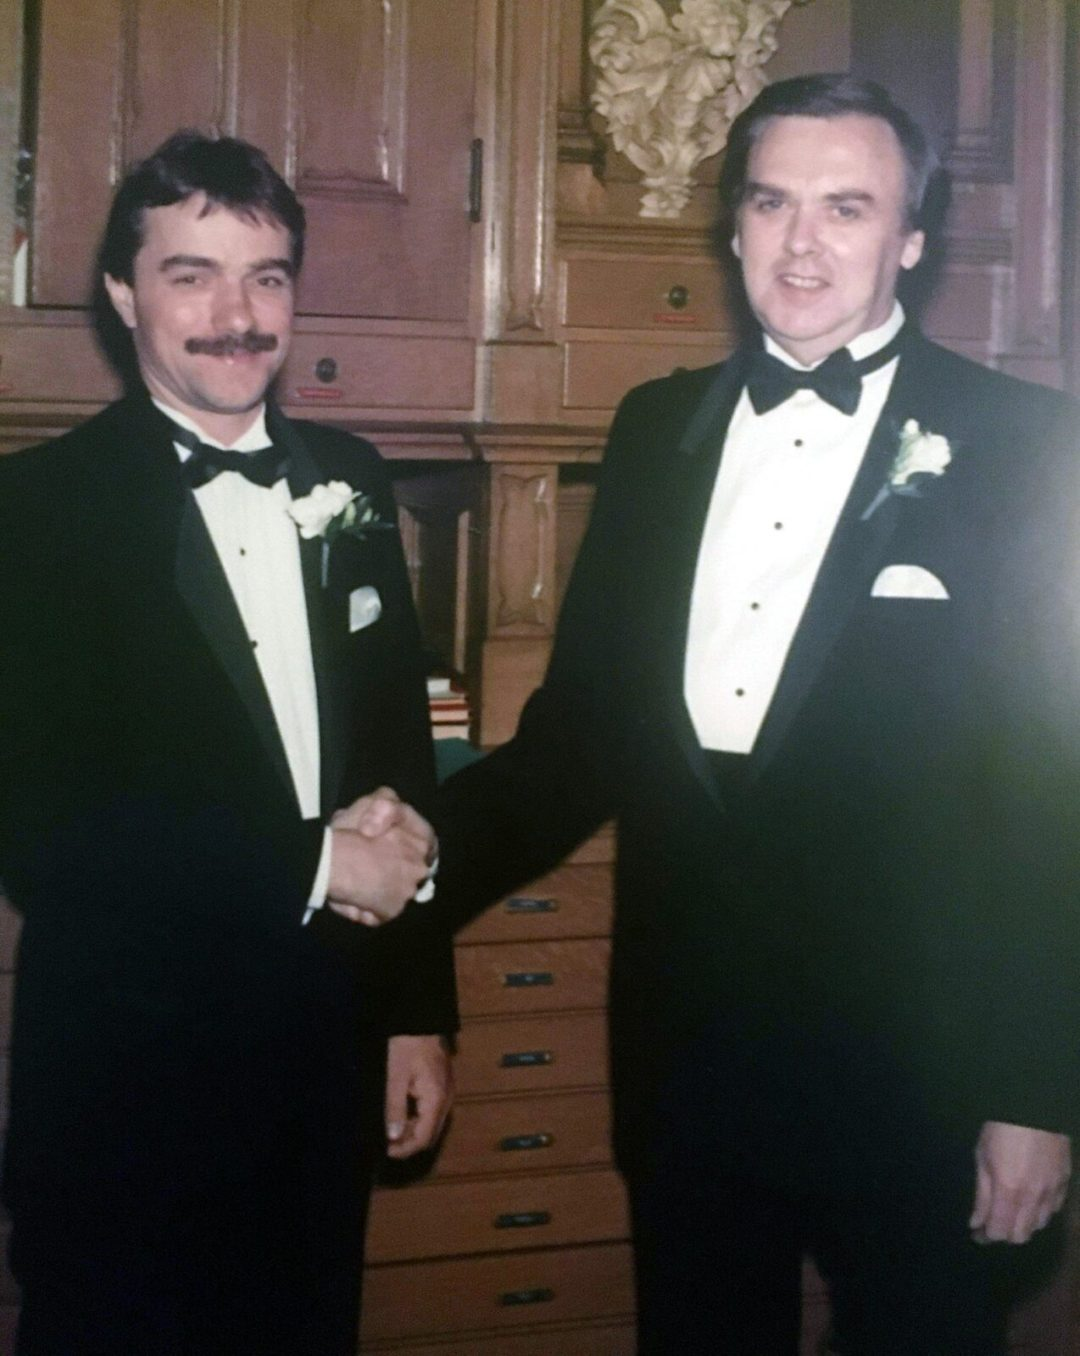 Larry Creilson and Rick Connor